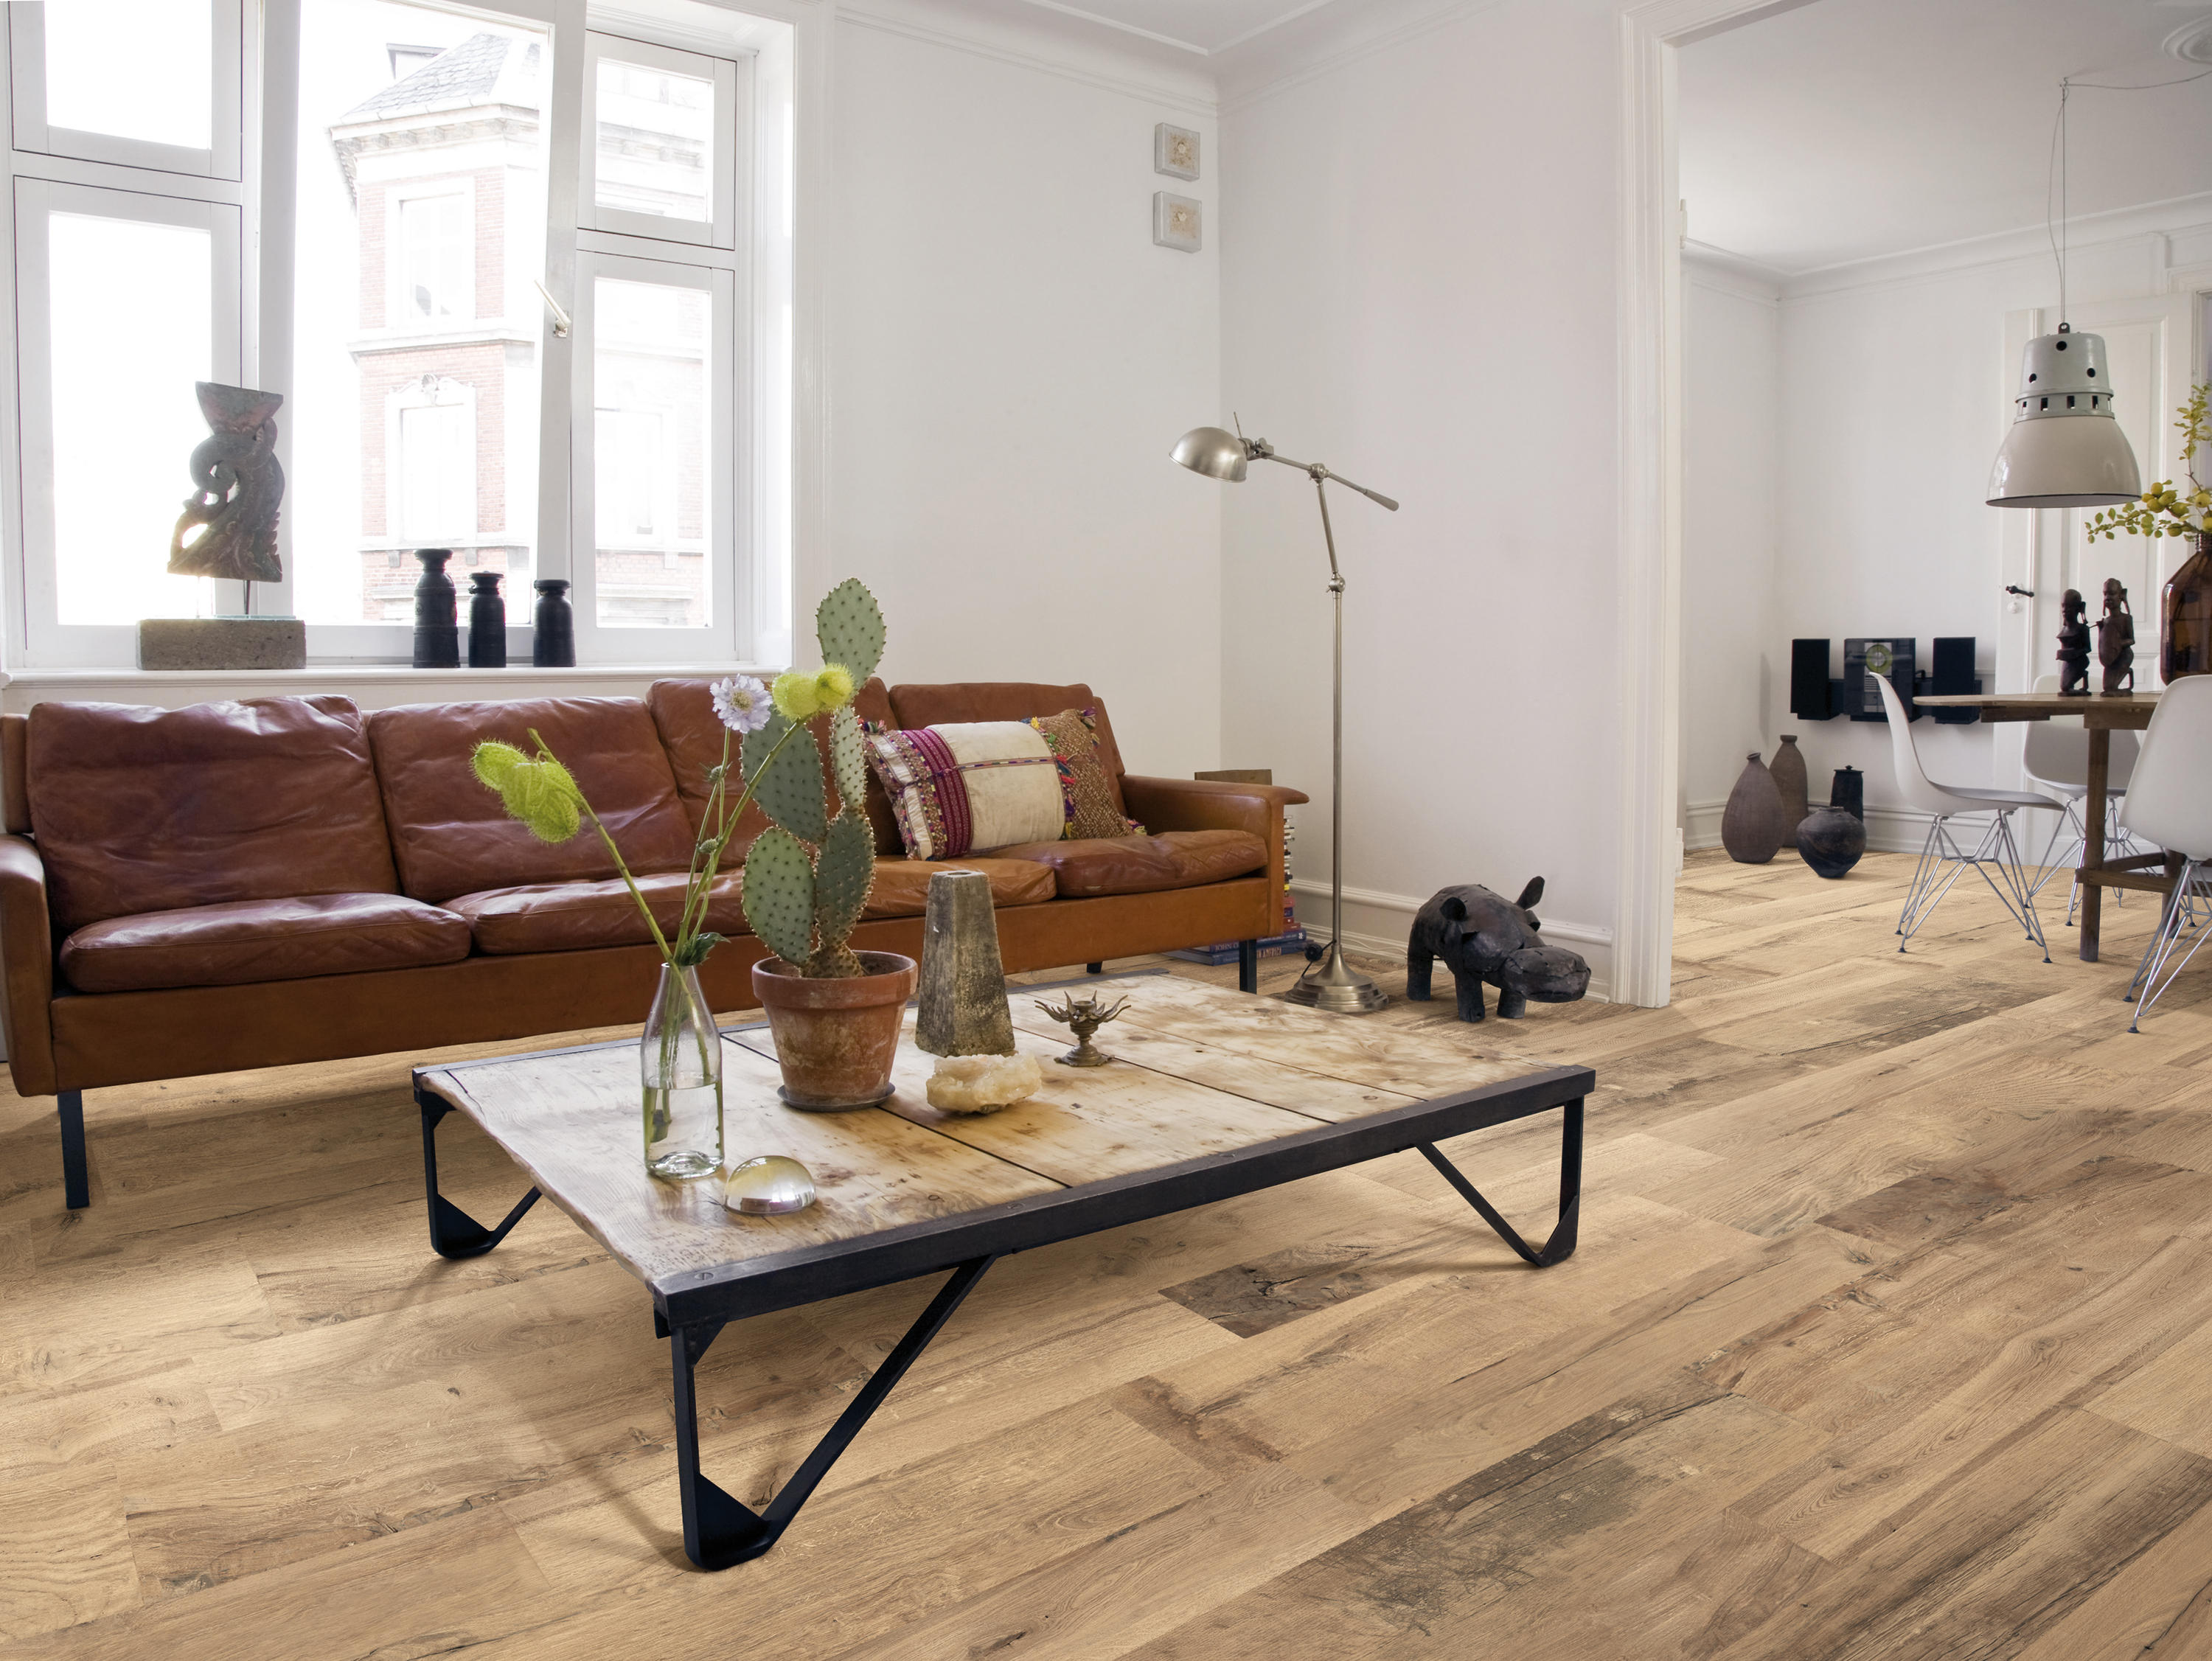 Millelegni scottish oak floor tiles from emilgroup architonic ambient images dailygadgetfo Images